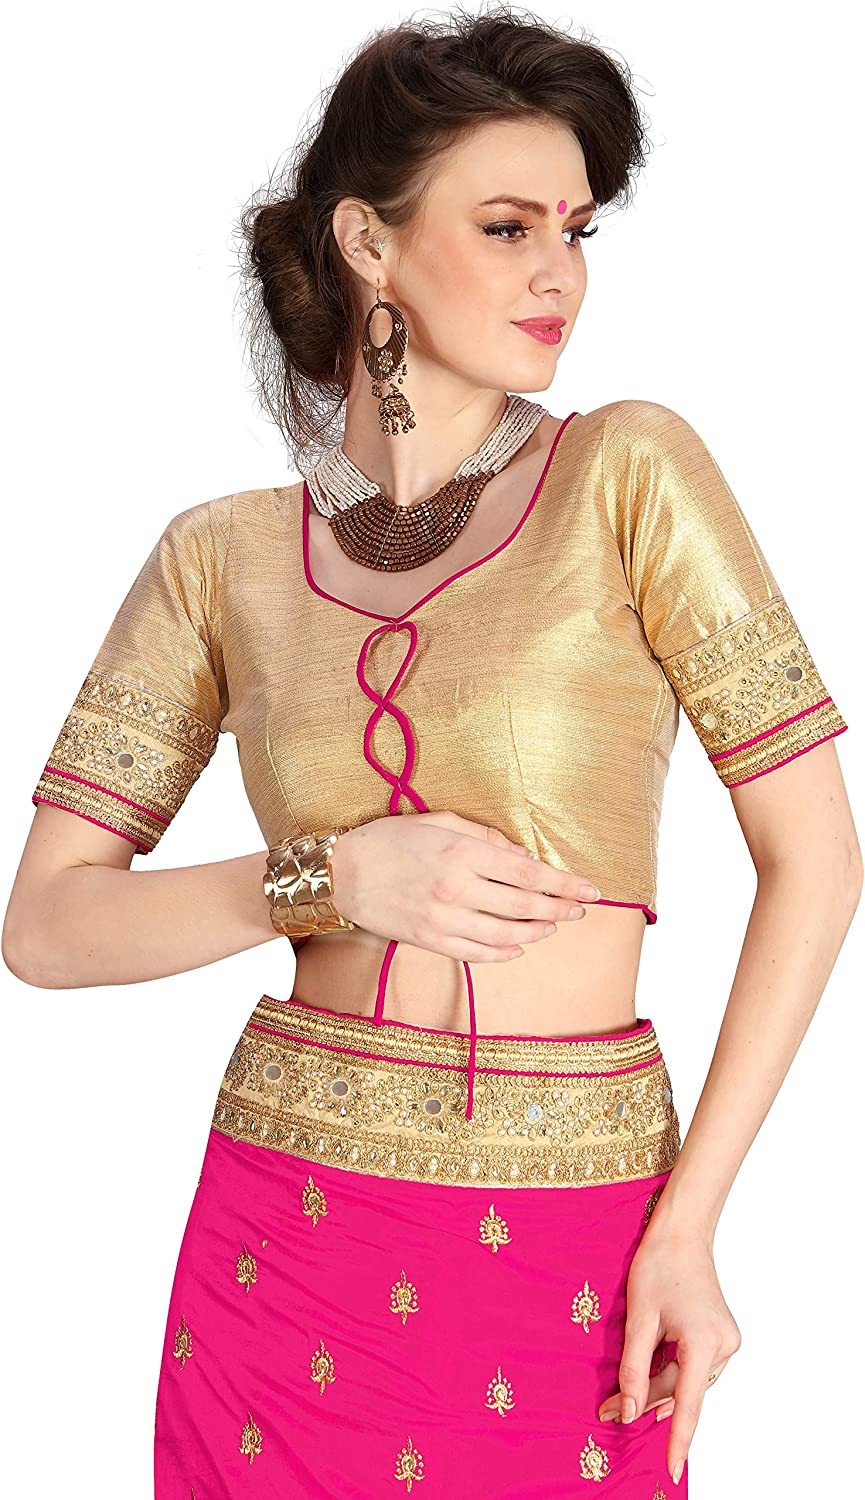 K579 Nivah Fashion Womens Dupion Silk /& Net Embroidery Saree with Blouse Piece